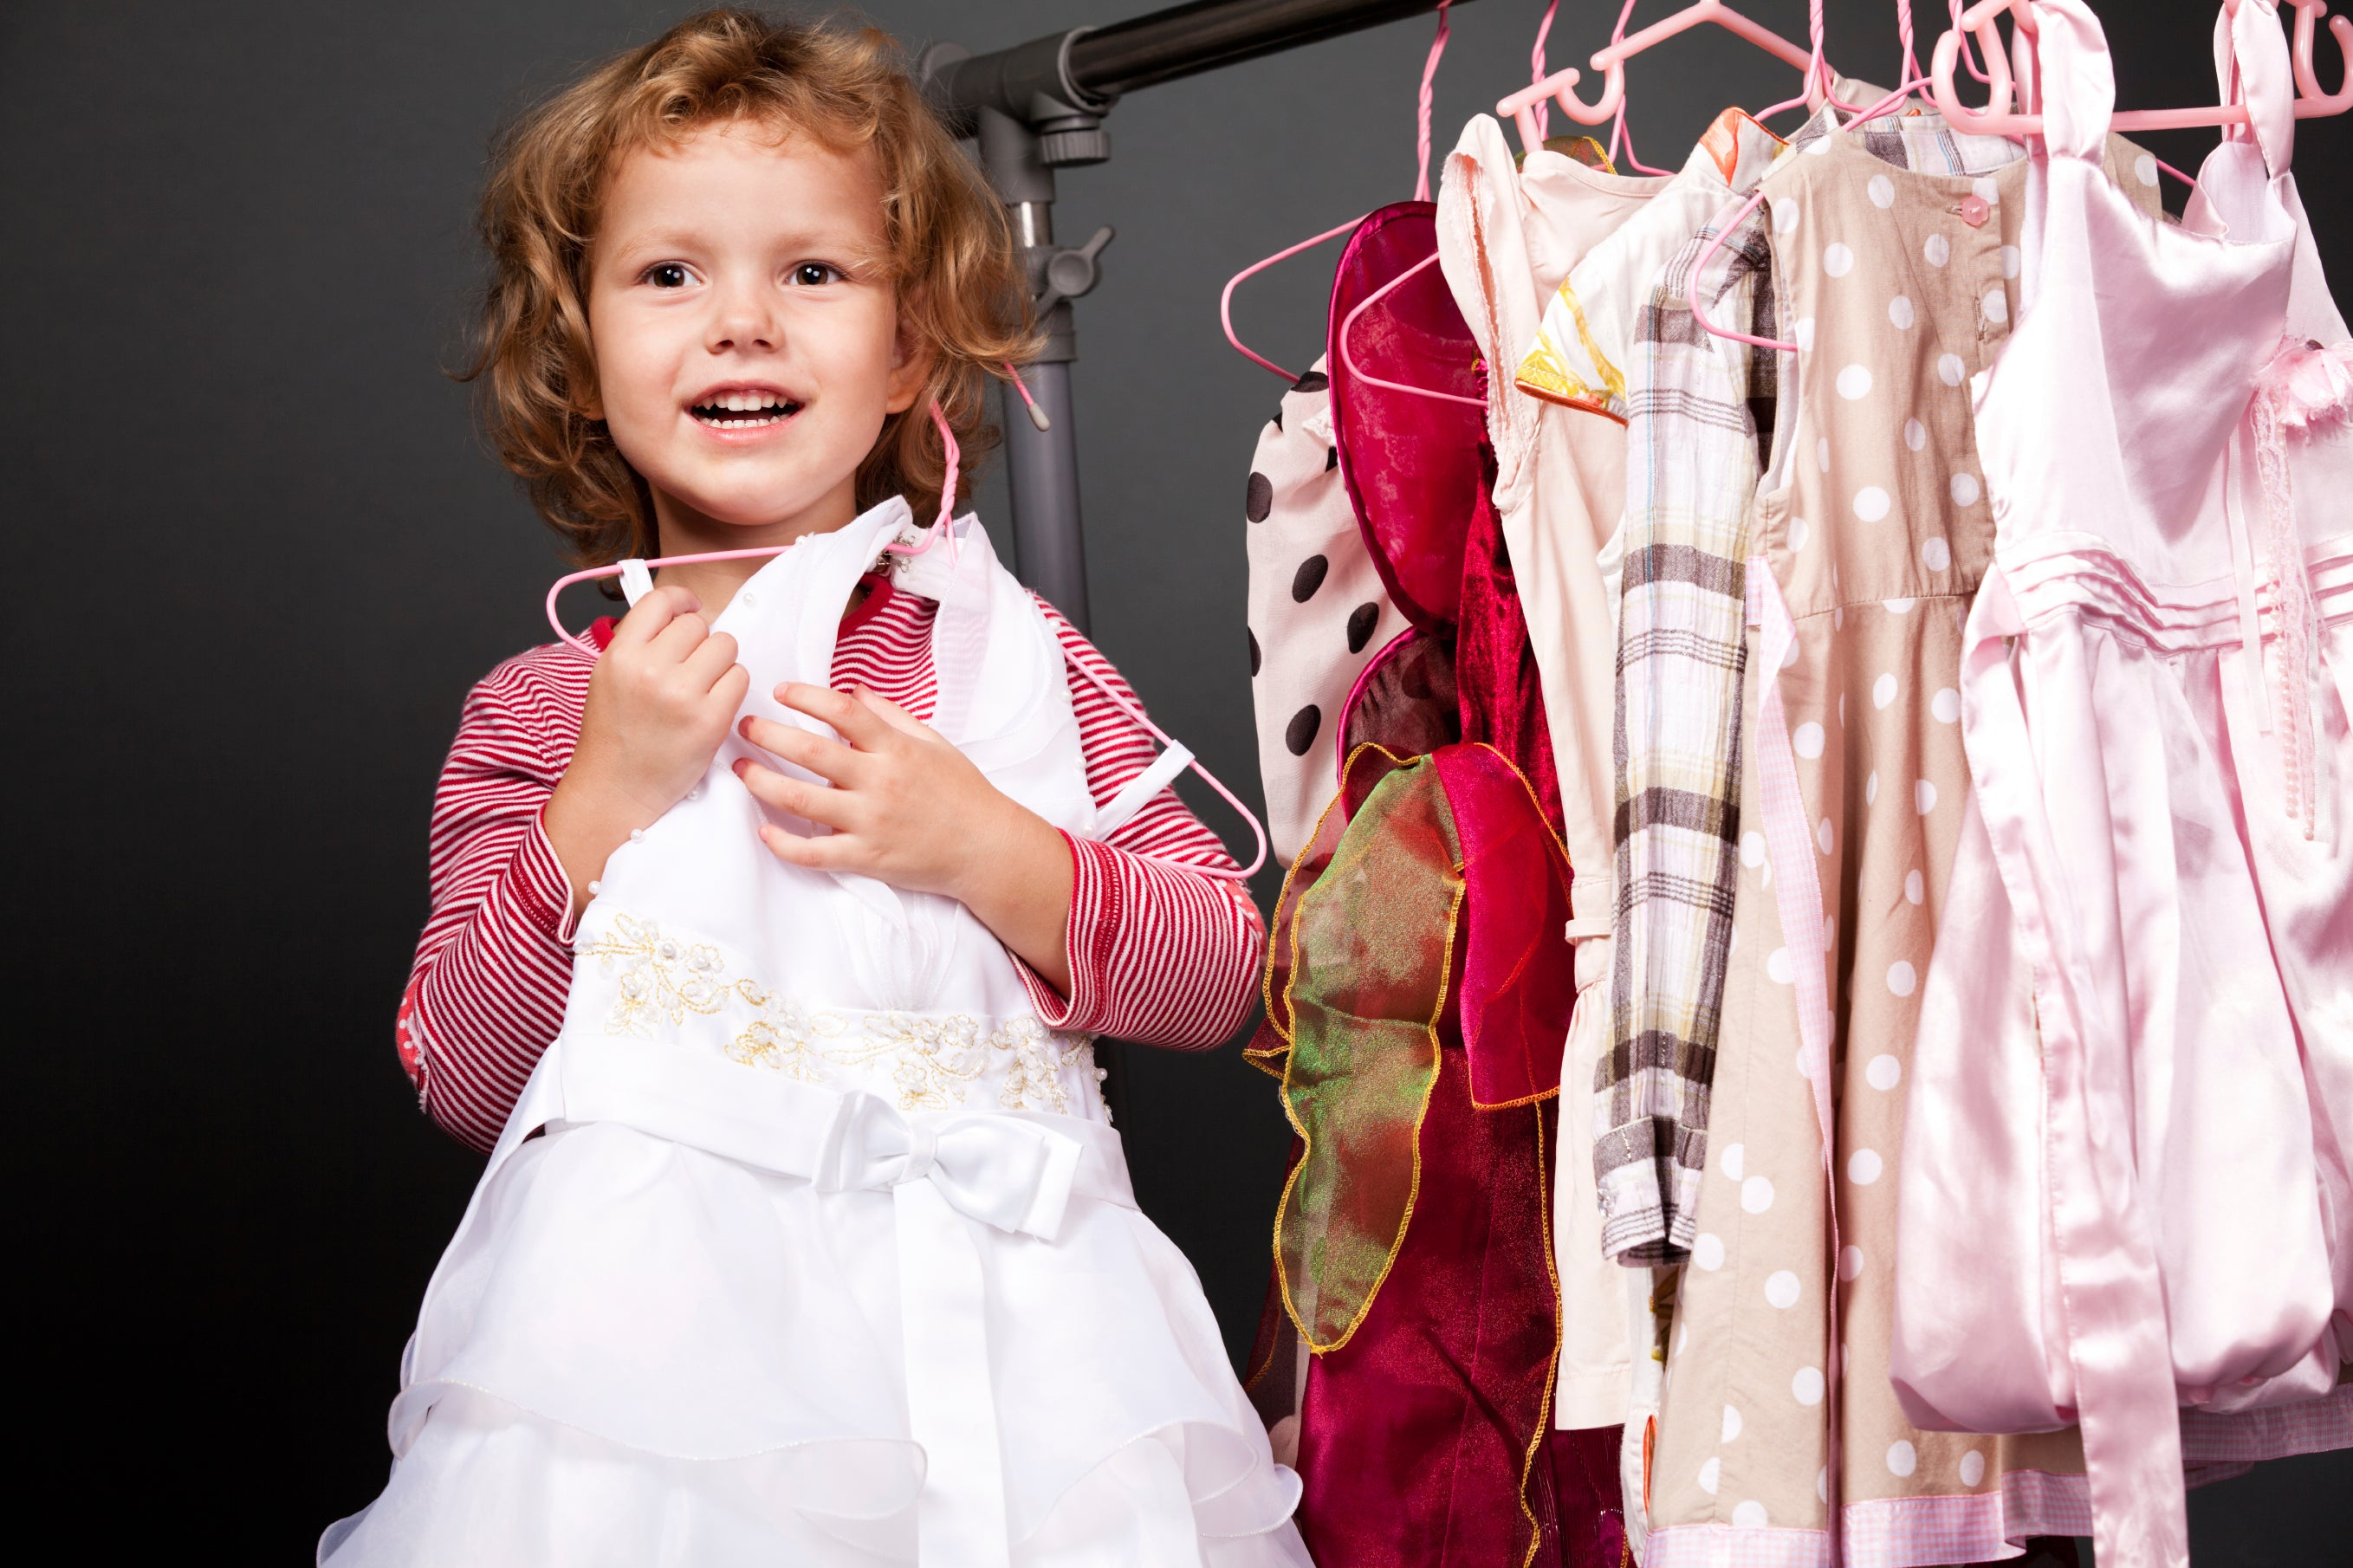 Donate A Dress For A Little Girl To Enjoy Boutique Clothing